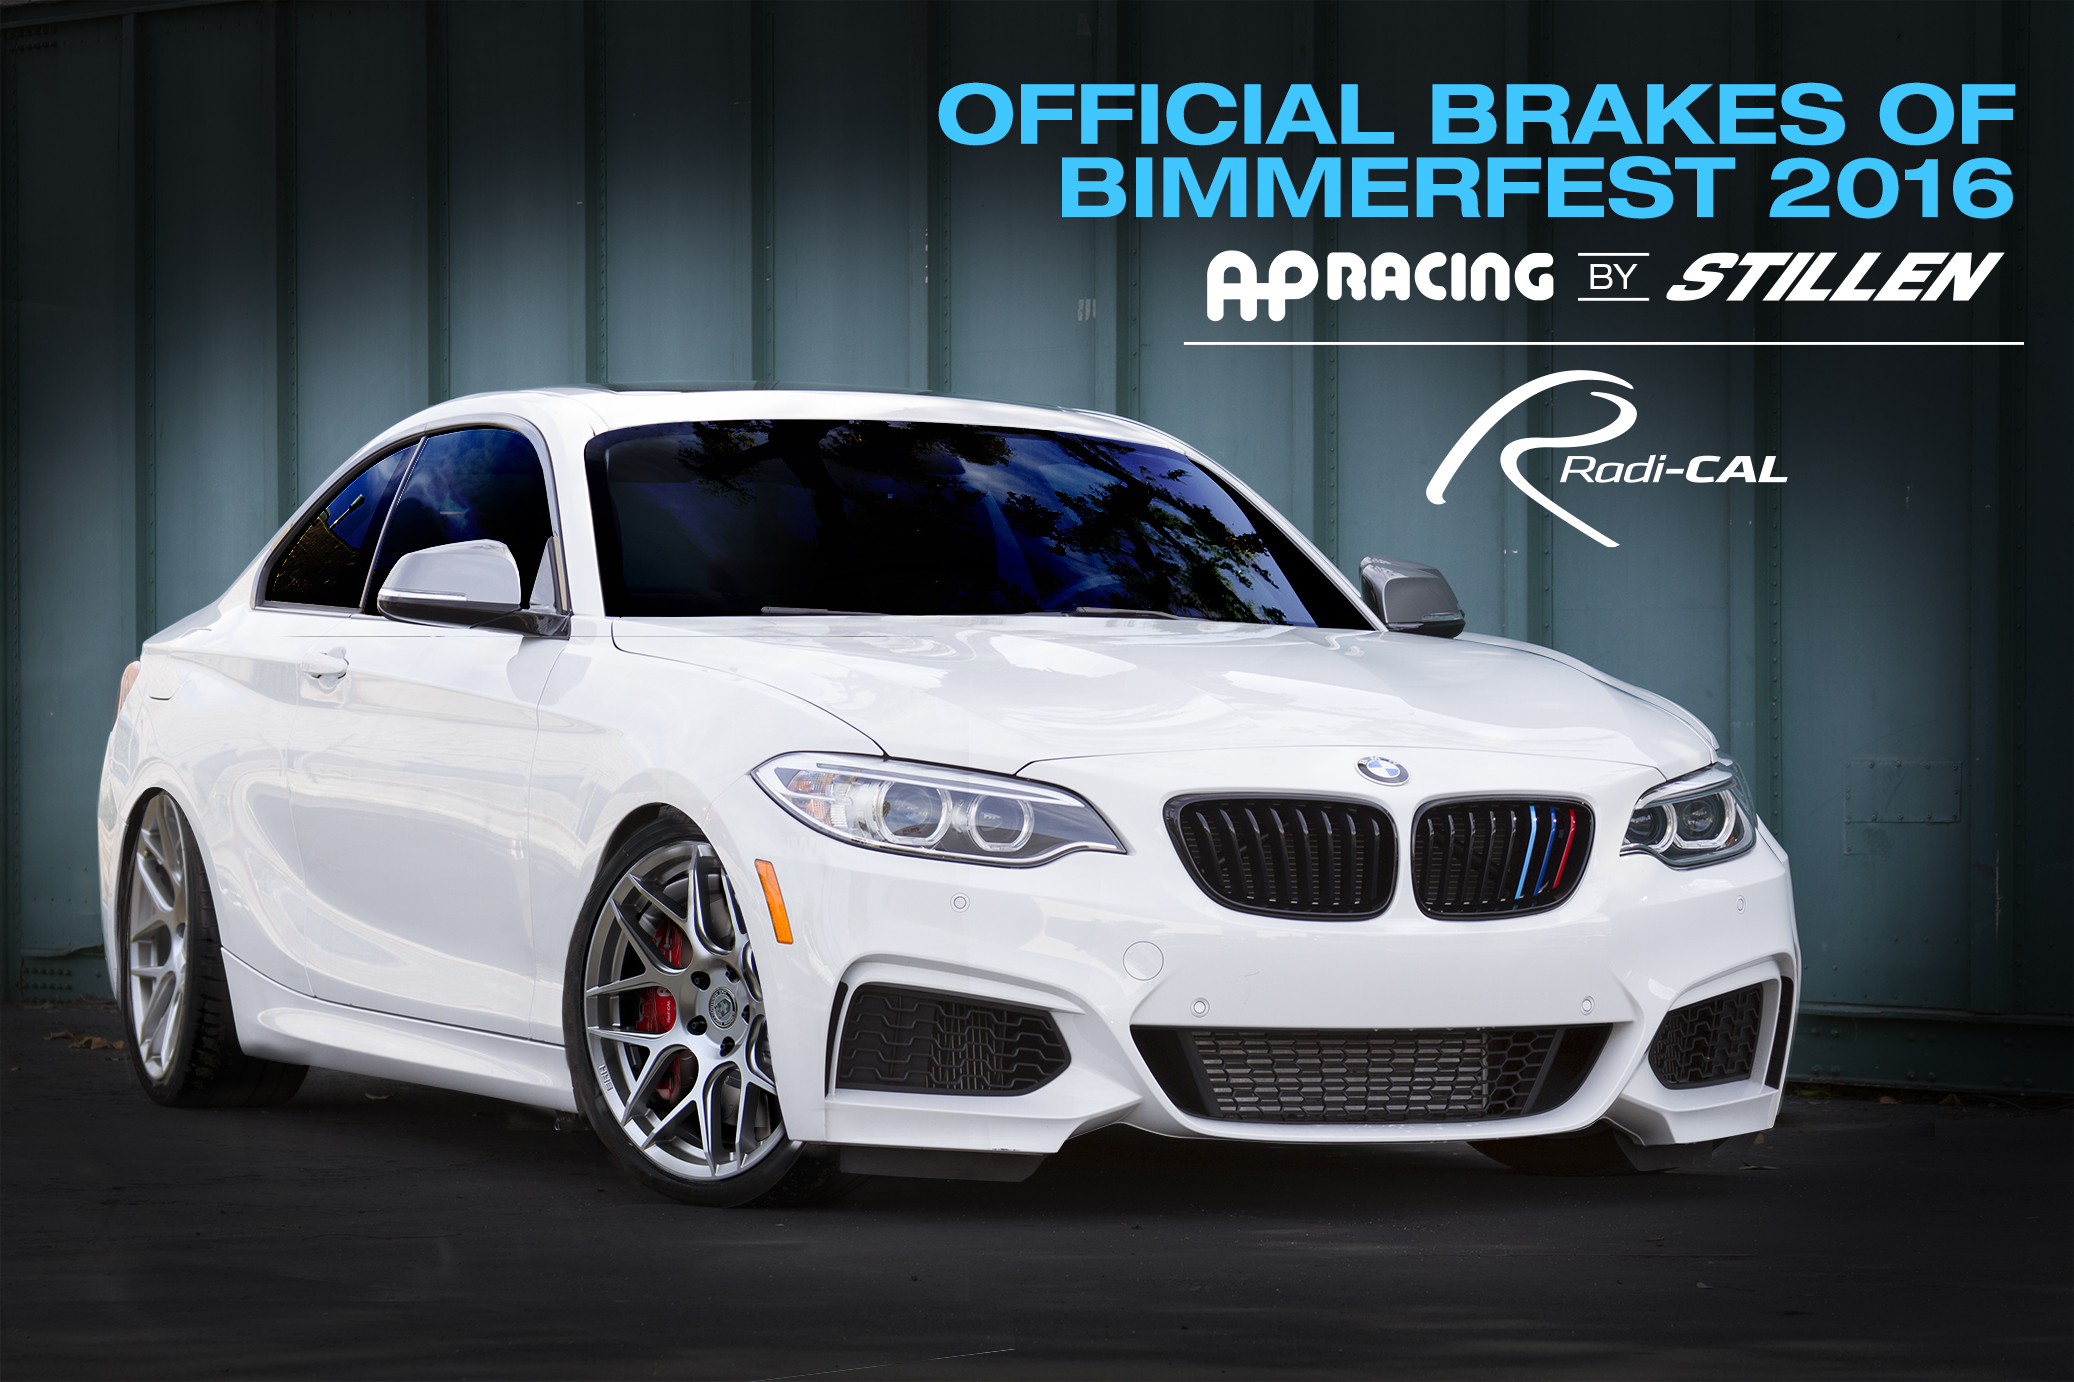 AP Racing by STILLEN Radical - Official Brakes fo Bimmerfest 2016